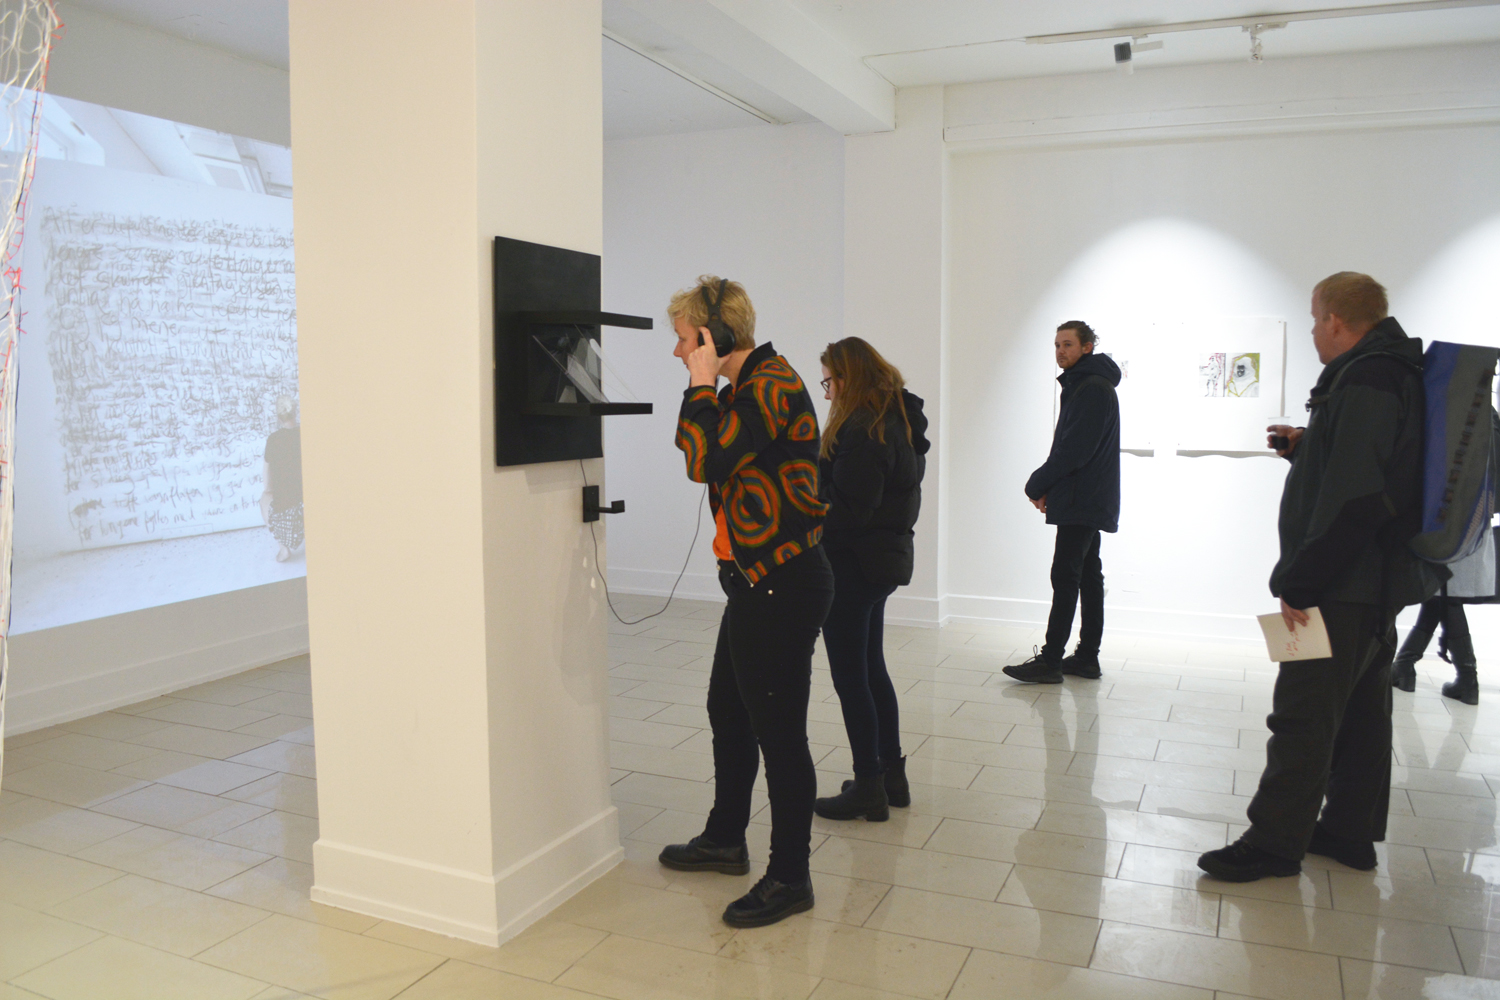 a-lick-and-a-promise-vernissage-13-web.jpg